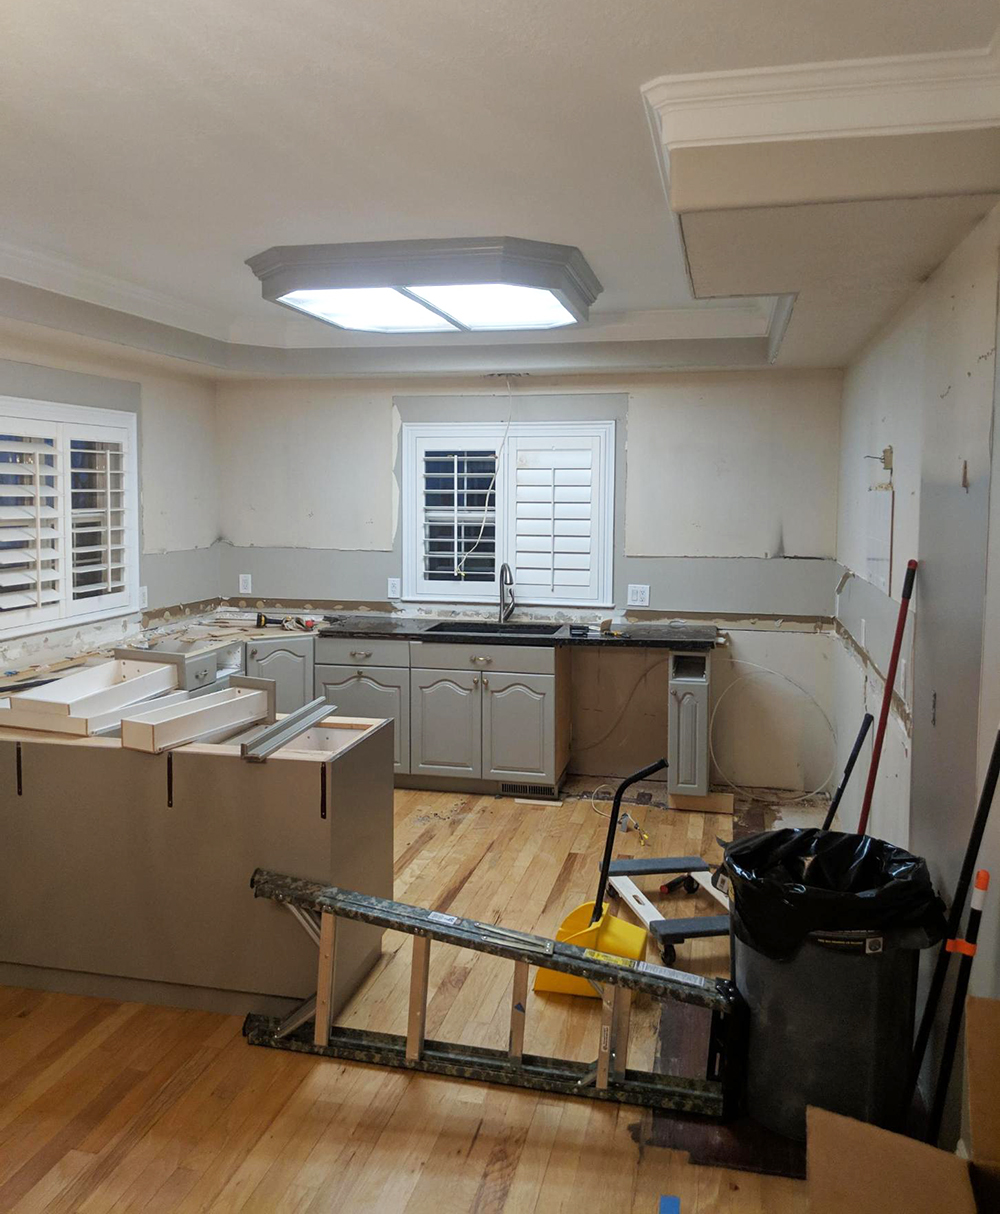 Kitchen Demo + A New Handy Tool - roomfortuesday.com